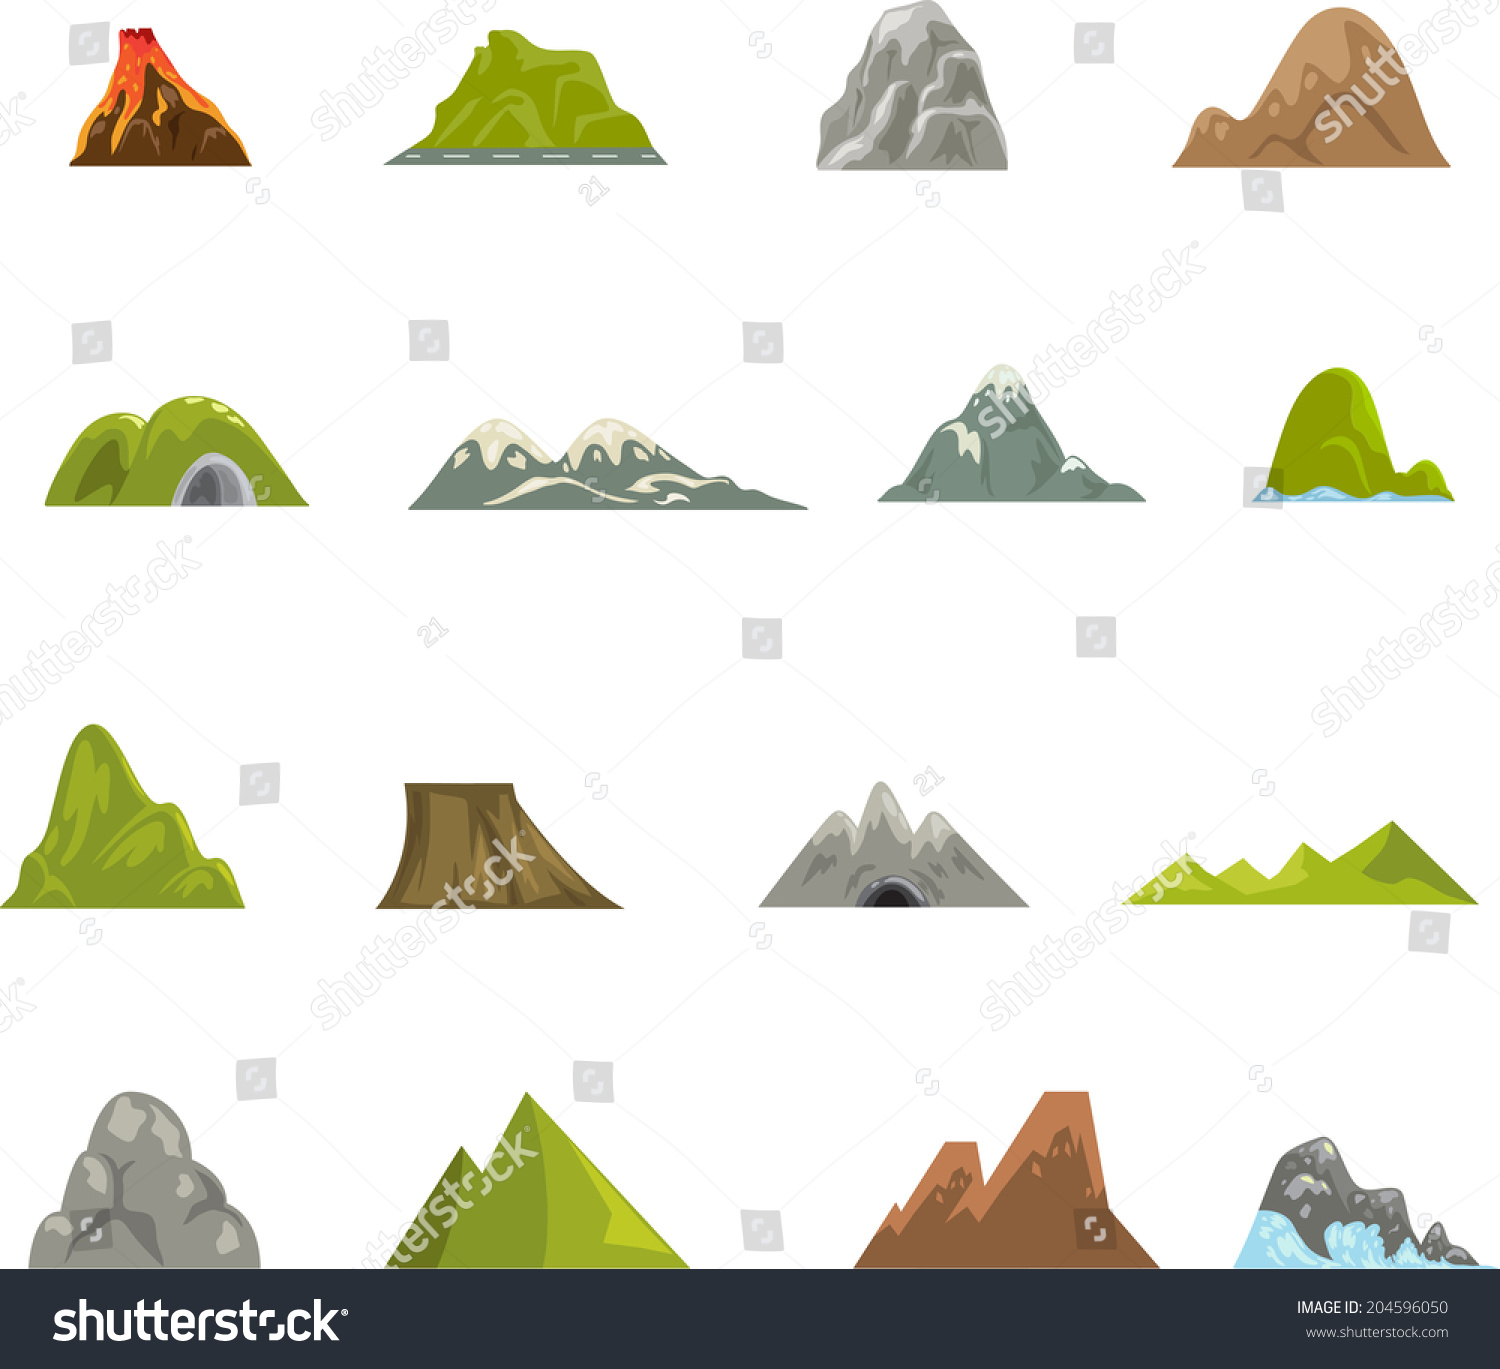 Mountain Icons Vector - 204596050 : Shutterstock